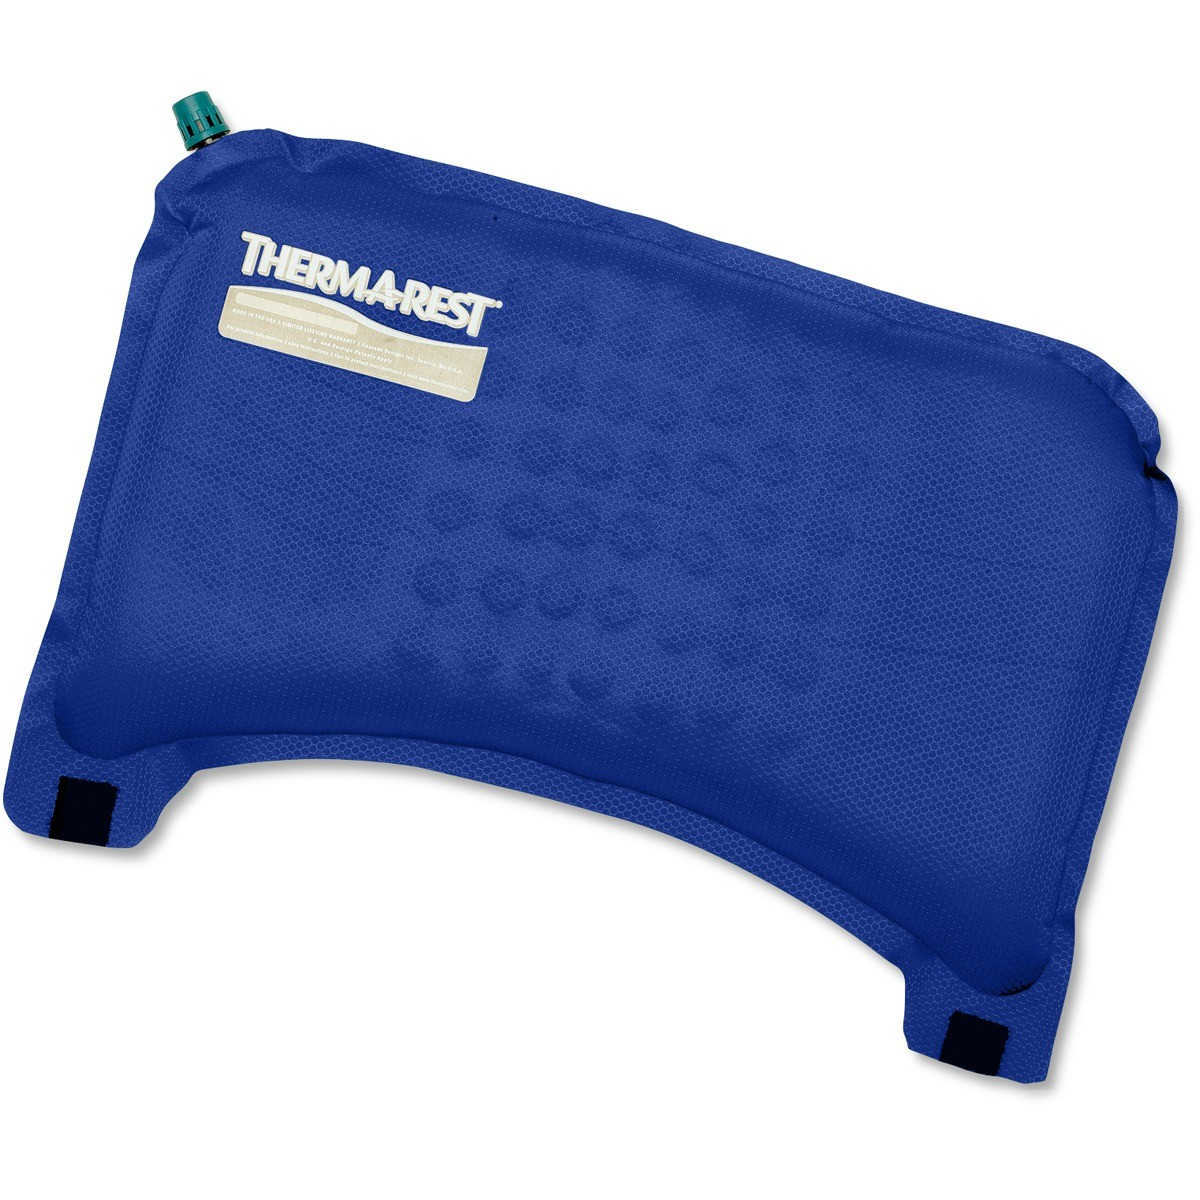 Therm-A-Rest Travel Seat